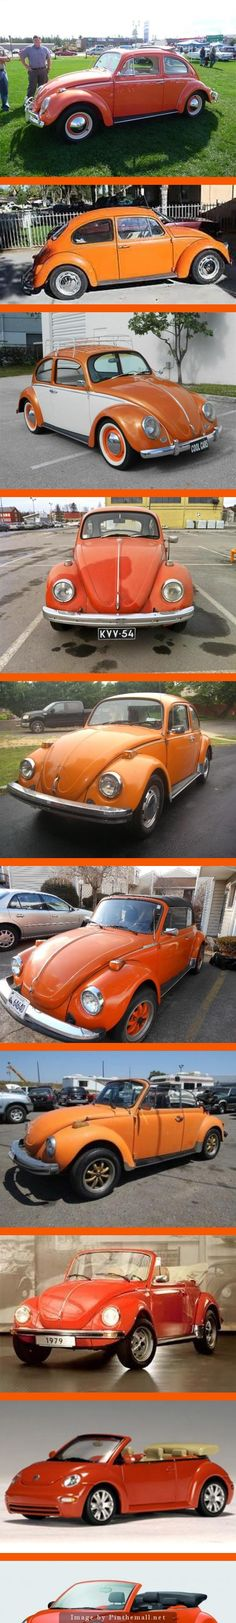 VW ORANGES: Top to Bottom - 63, 67, 65, 71, 74, 76, 76, 79, New Beetle, 2010 New Beetle -